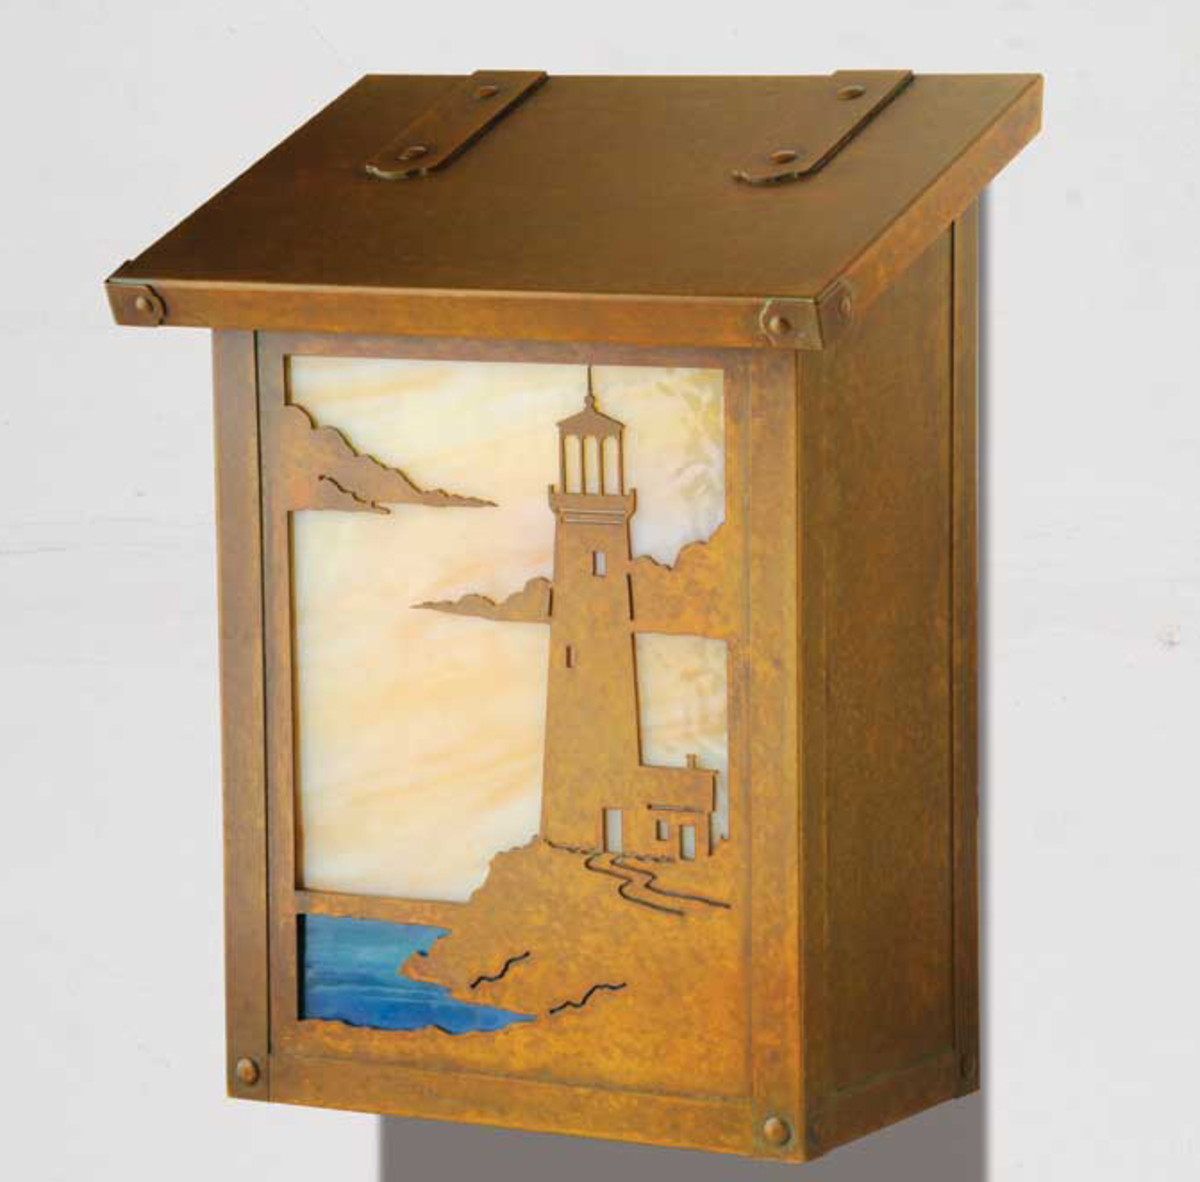 Part of the Coastal Cottage series, the Lighthouse design from America's Finest Mailbox can be backlit with LEDs.